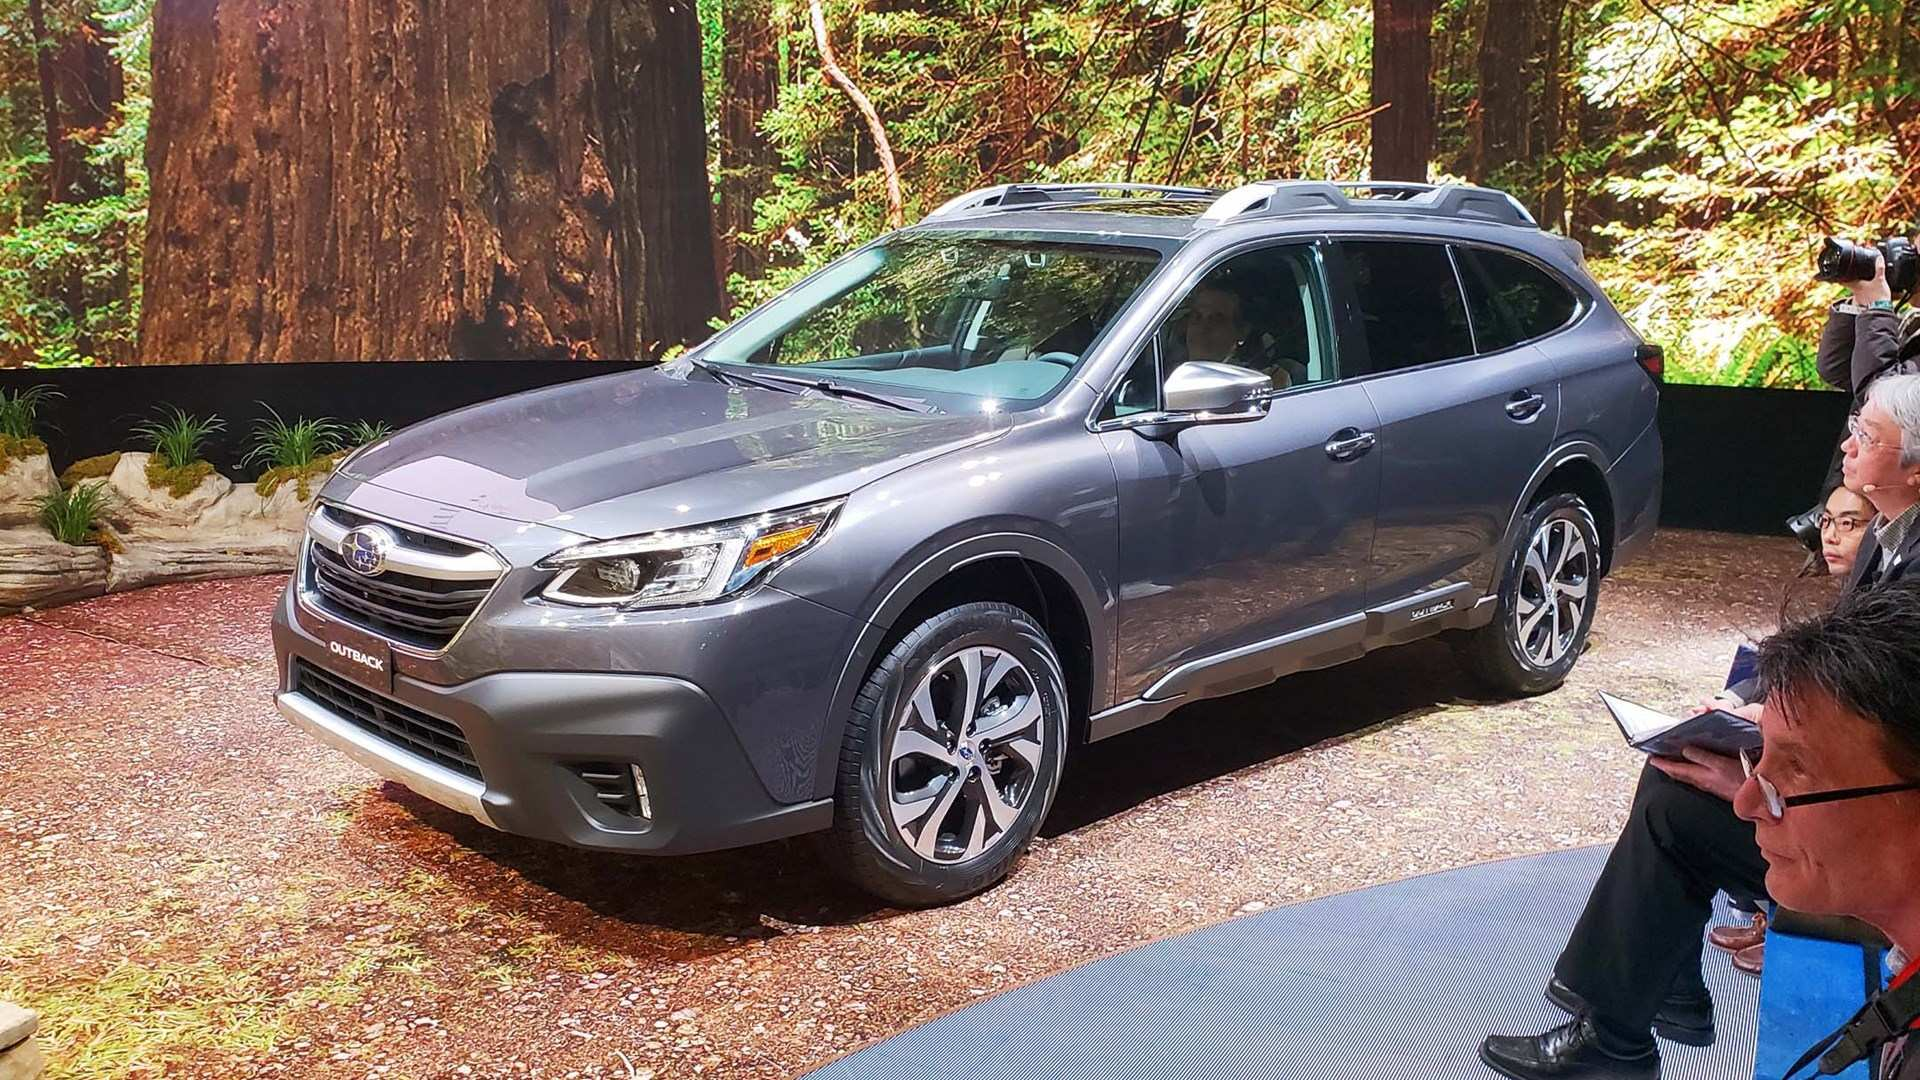 15 All New Subaru Outback 2020 Speed Test by Subaru Outback 2020